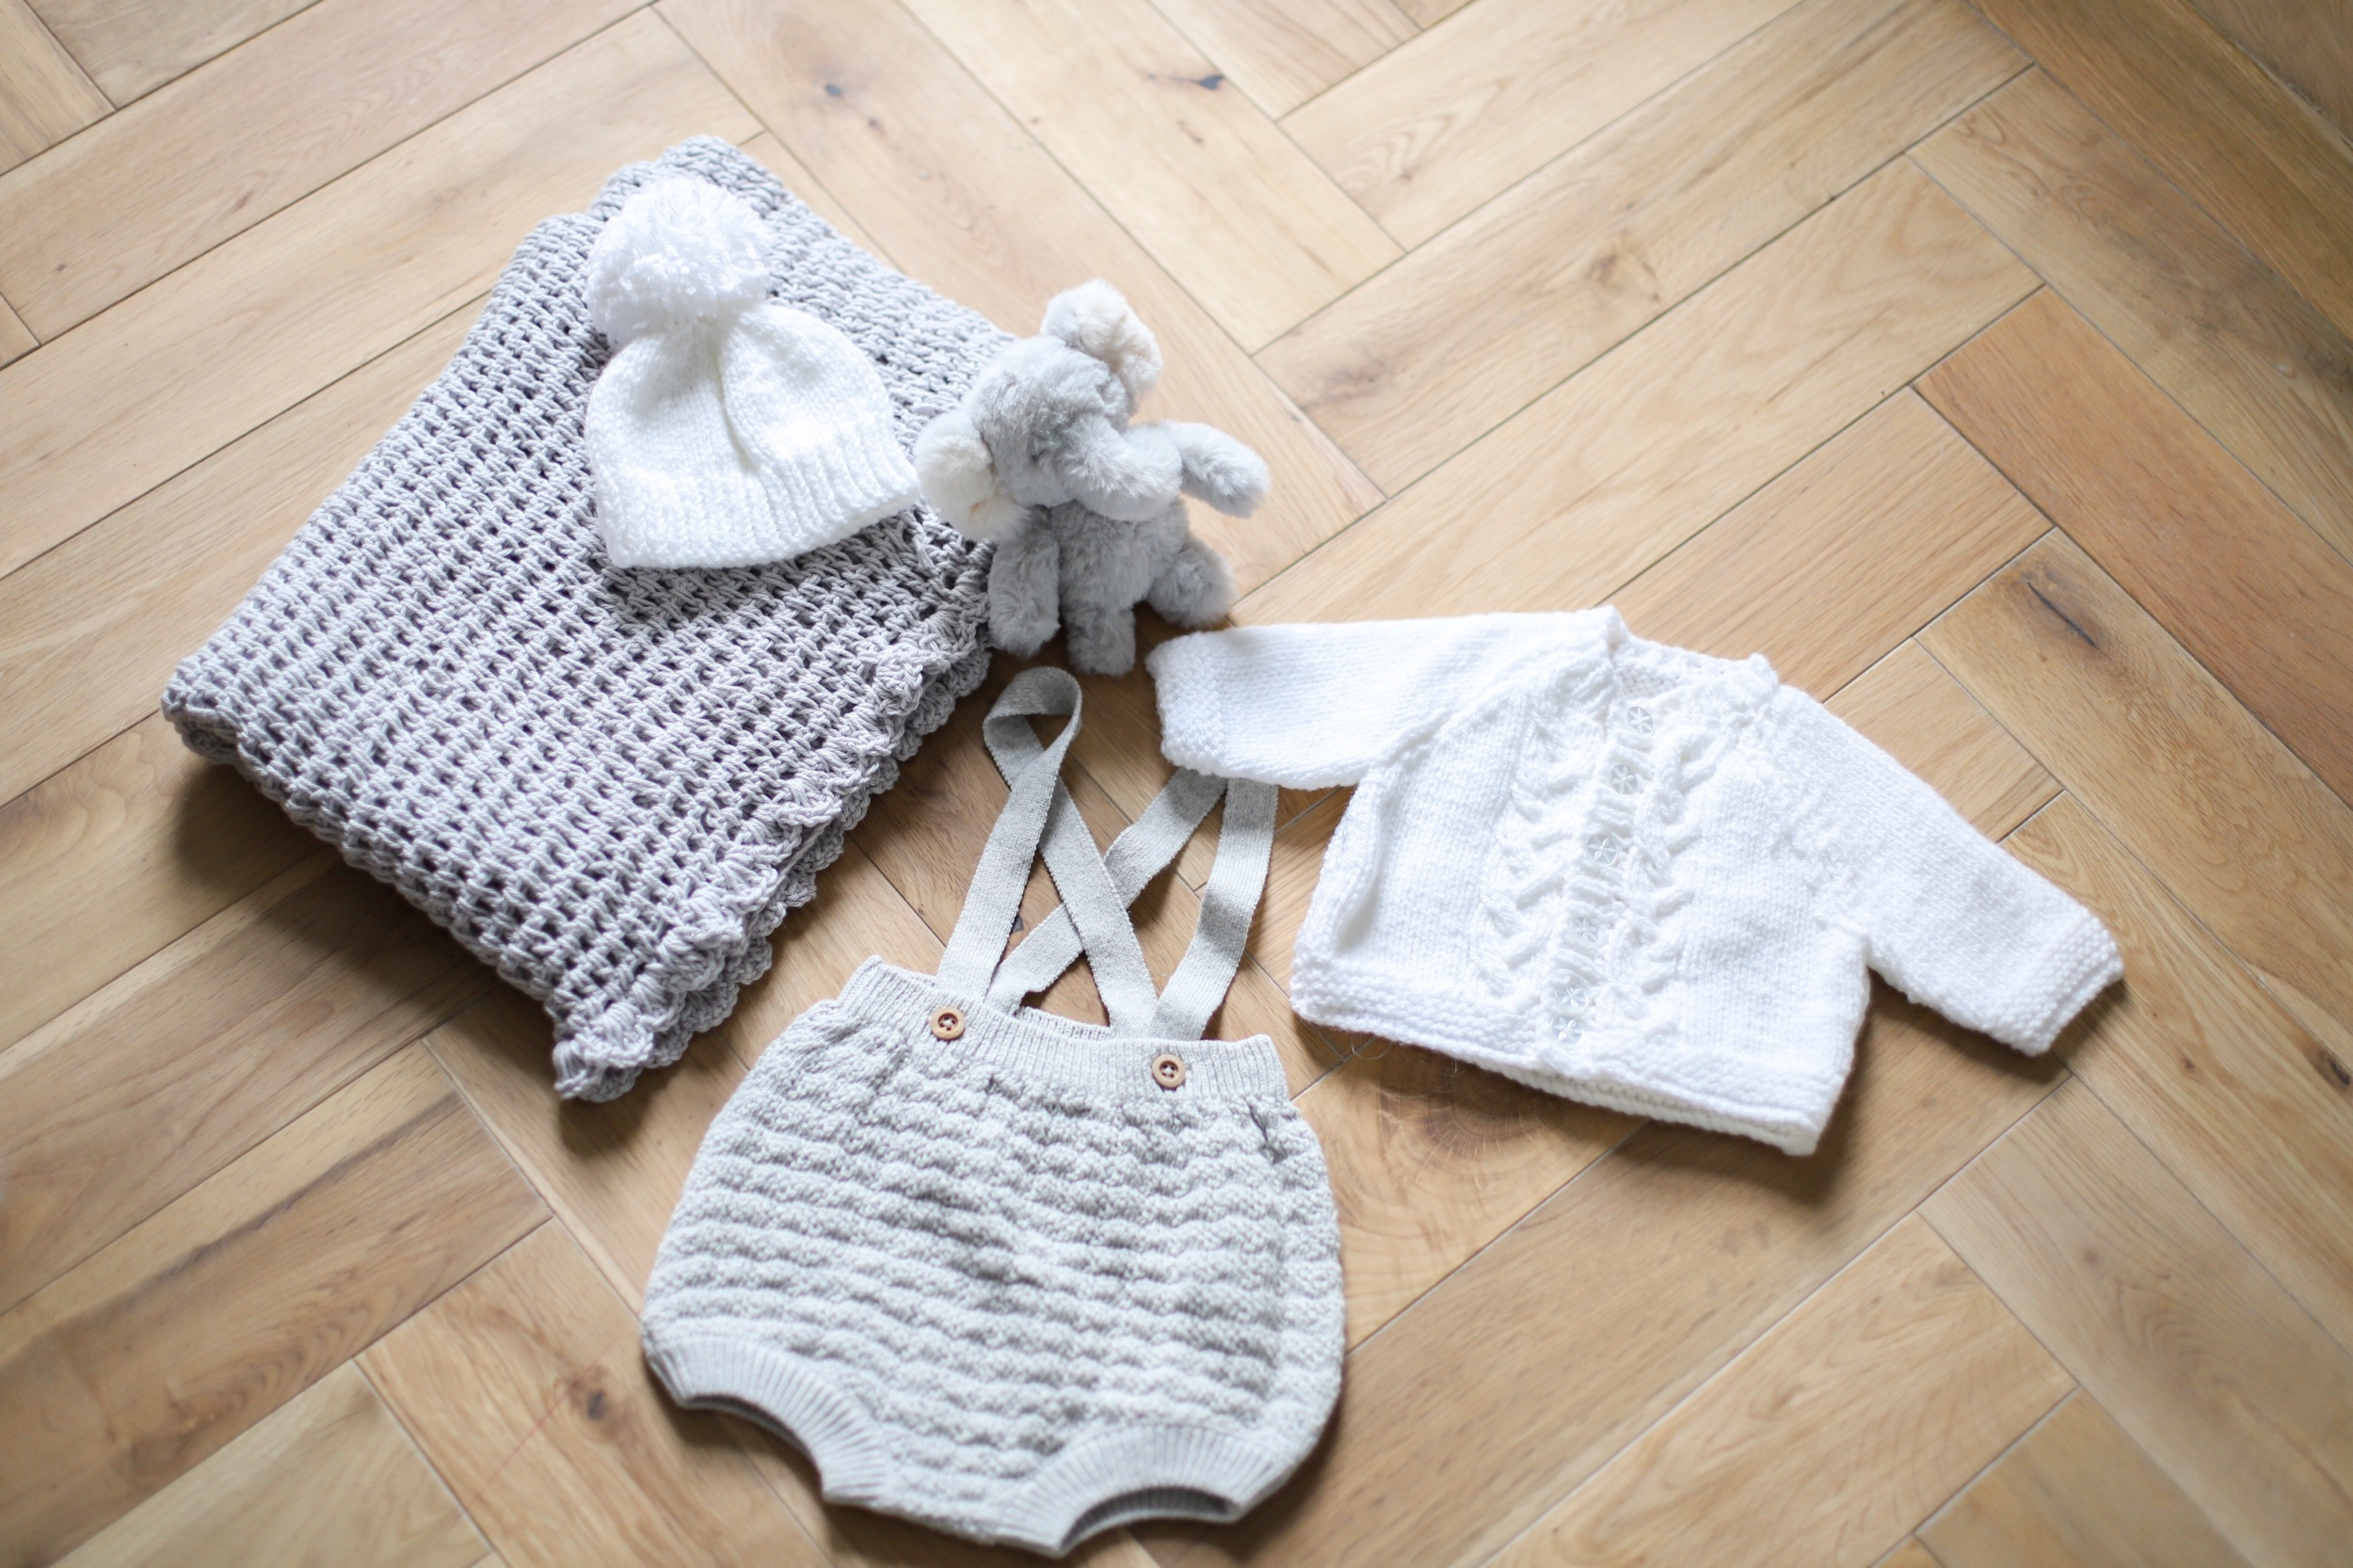 Some little knitted items that both Nanas have been busy doing.